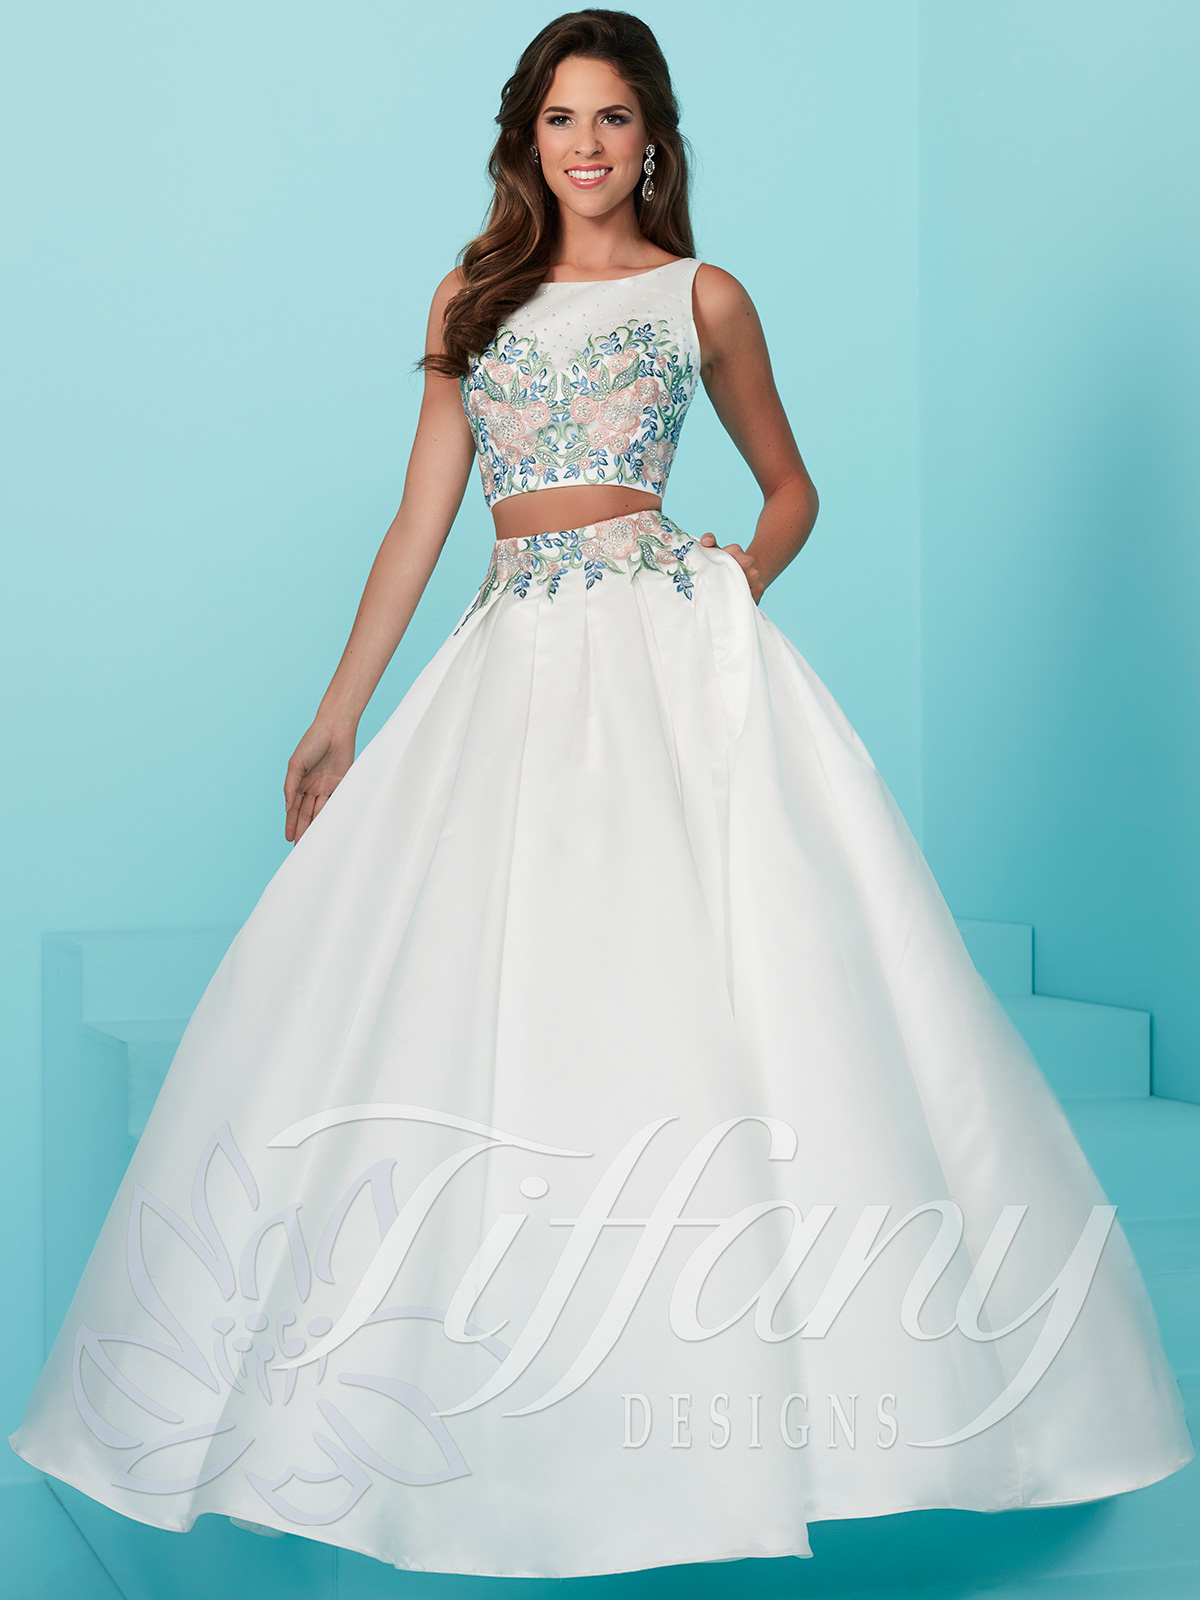 Two Piece Prom Gown By Tiffany Designs 16228authorized House Of Wu Retailer